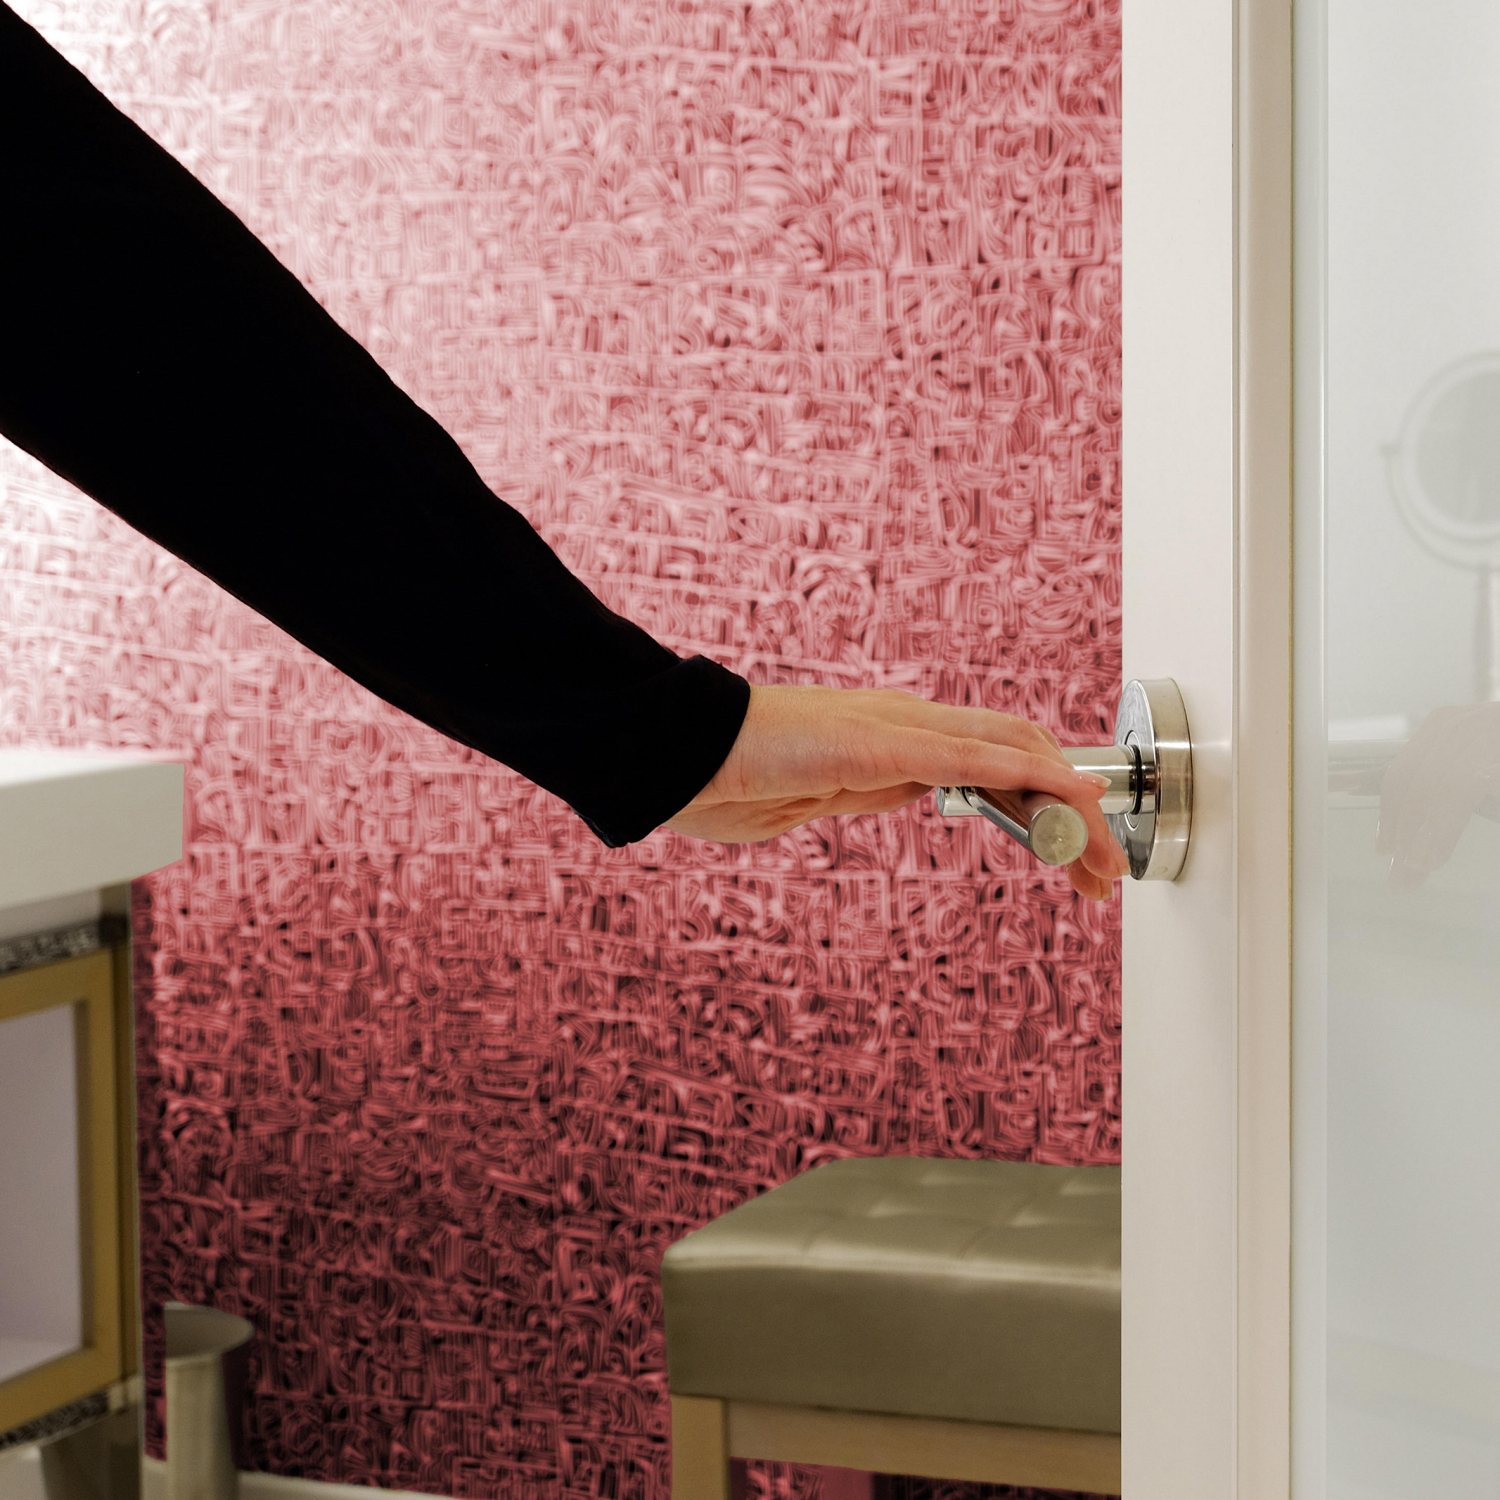 Opening a bathroom door at an open house